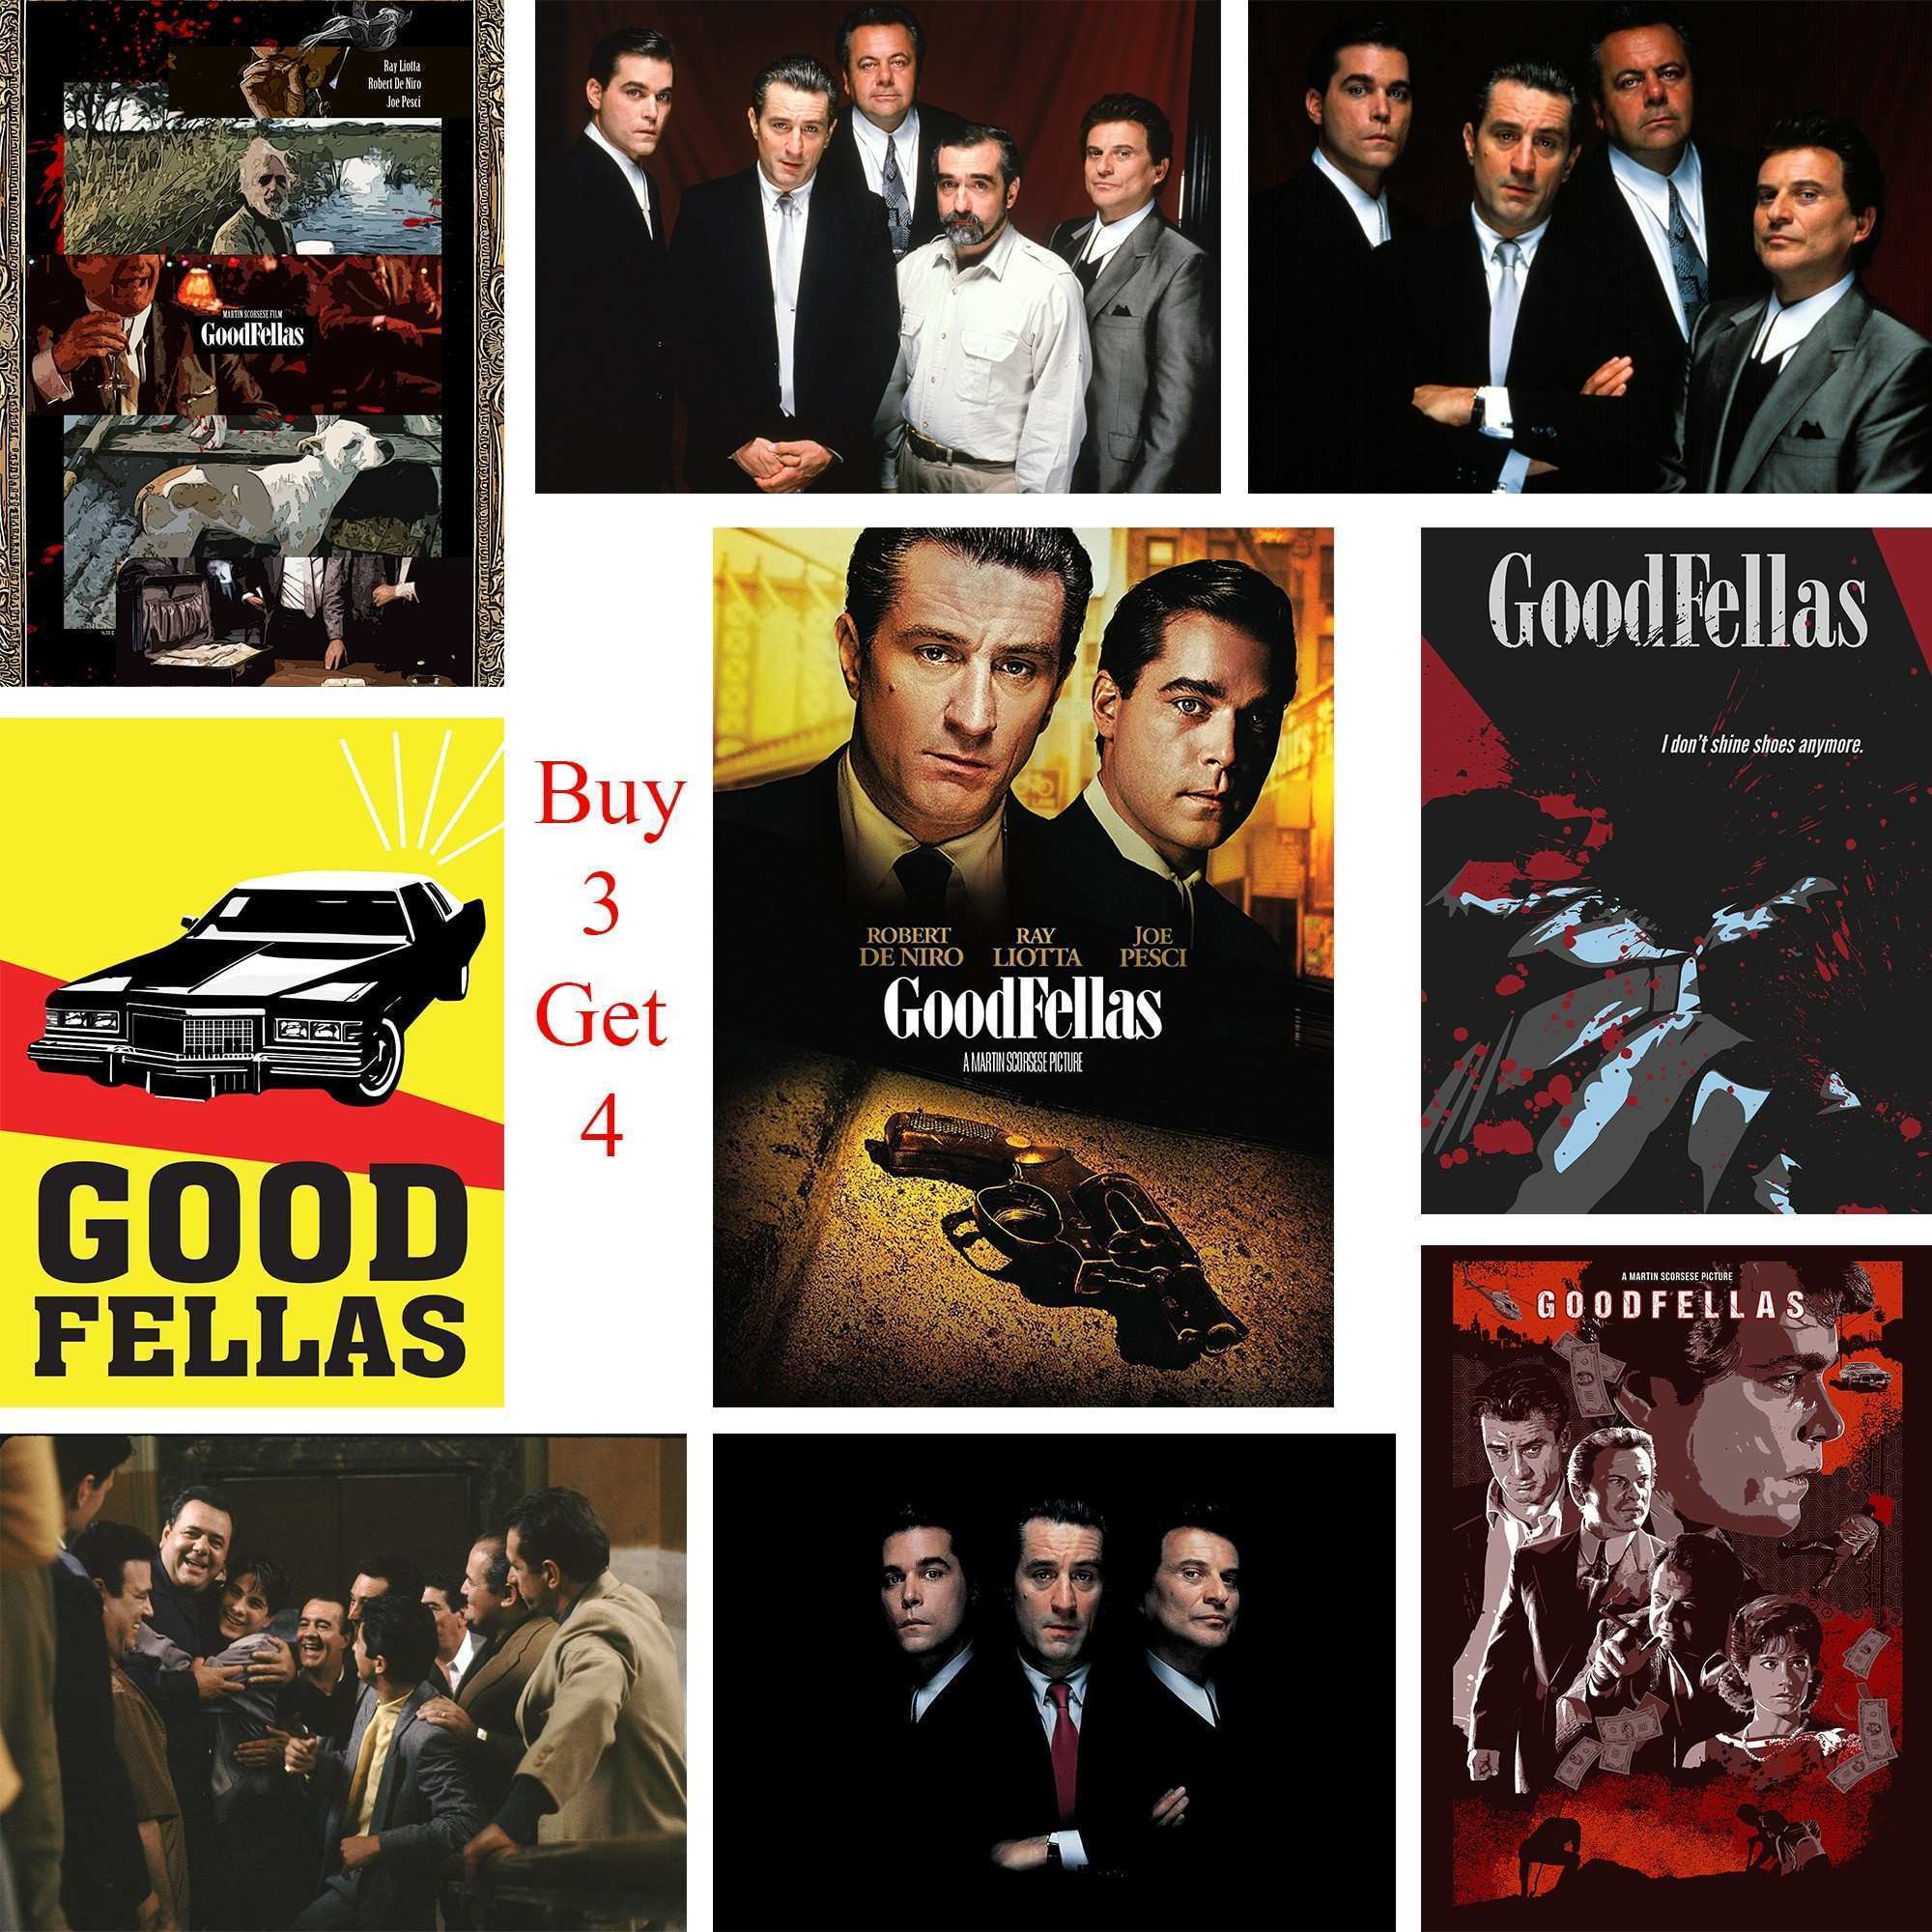 Goodfellas Posters Movie Wall Stickers White Coated Paper Prints